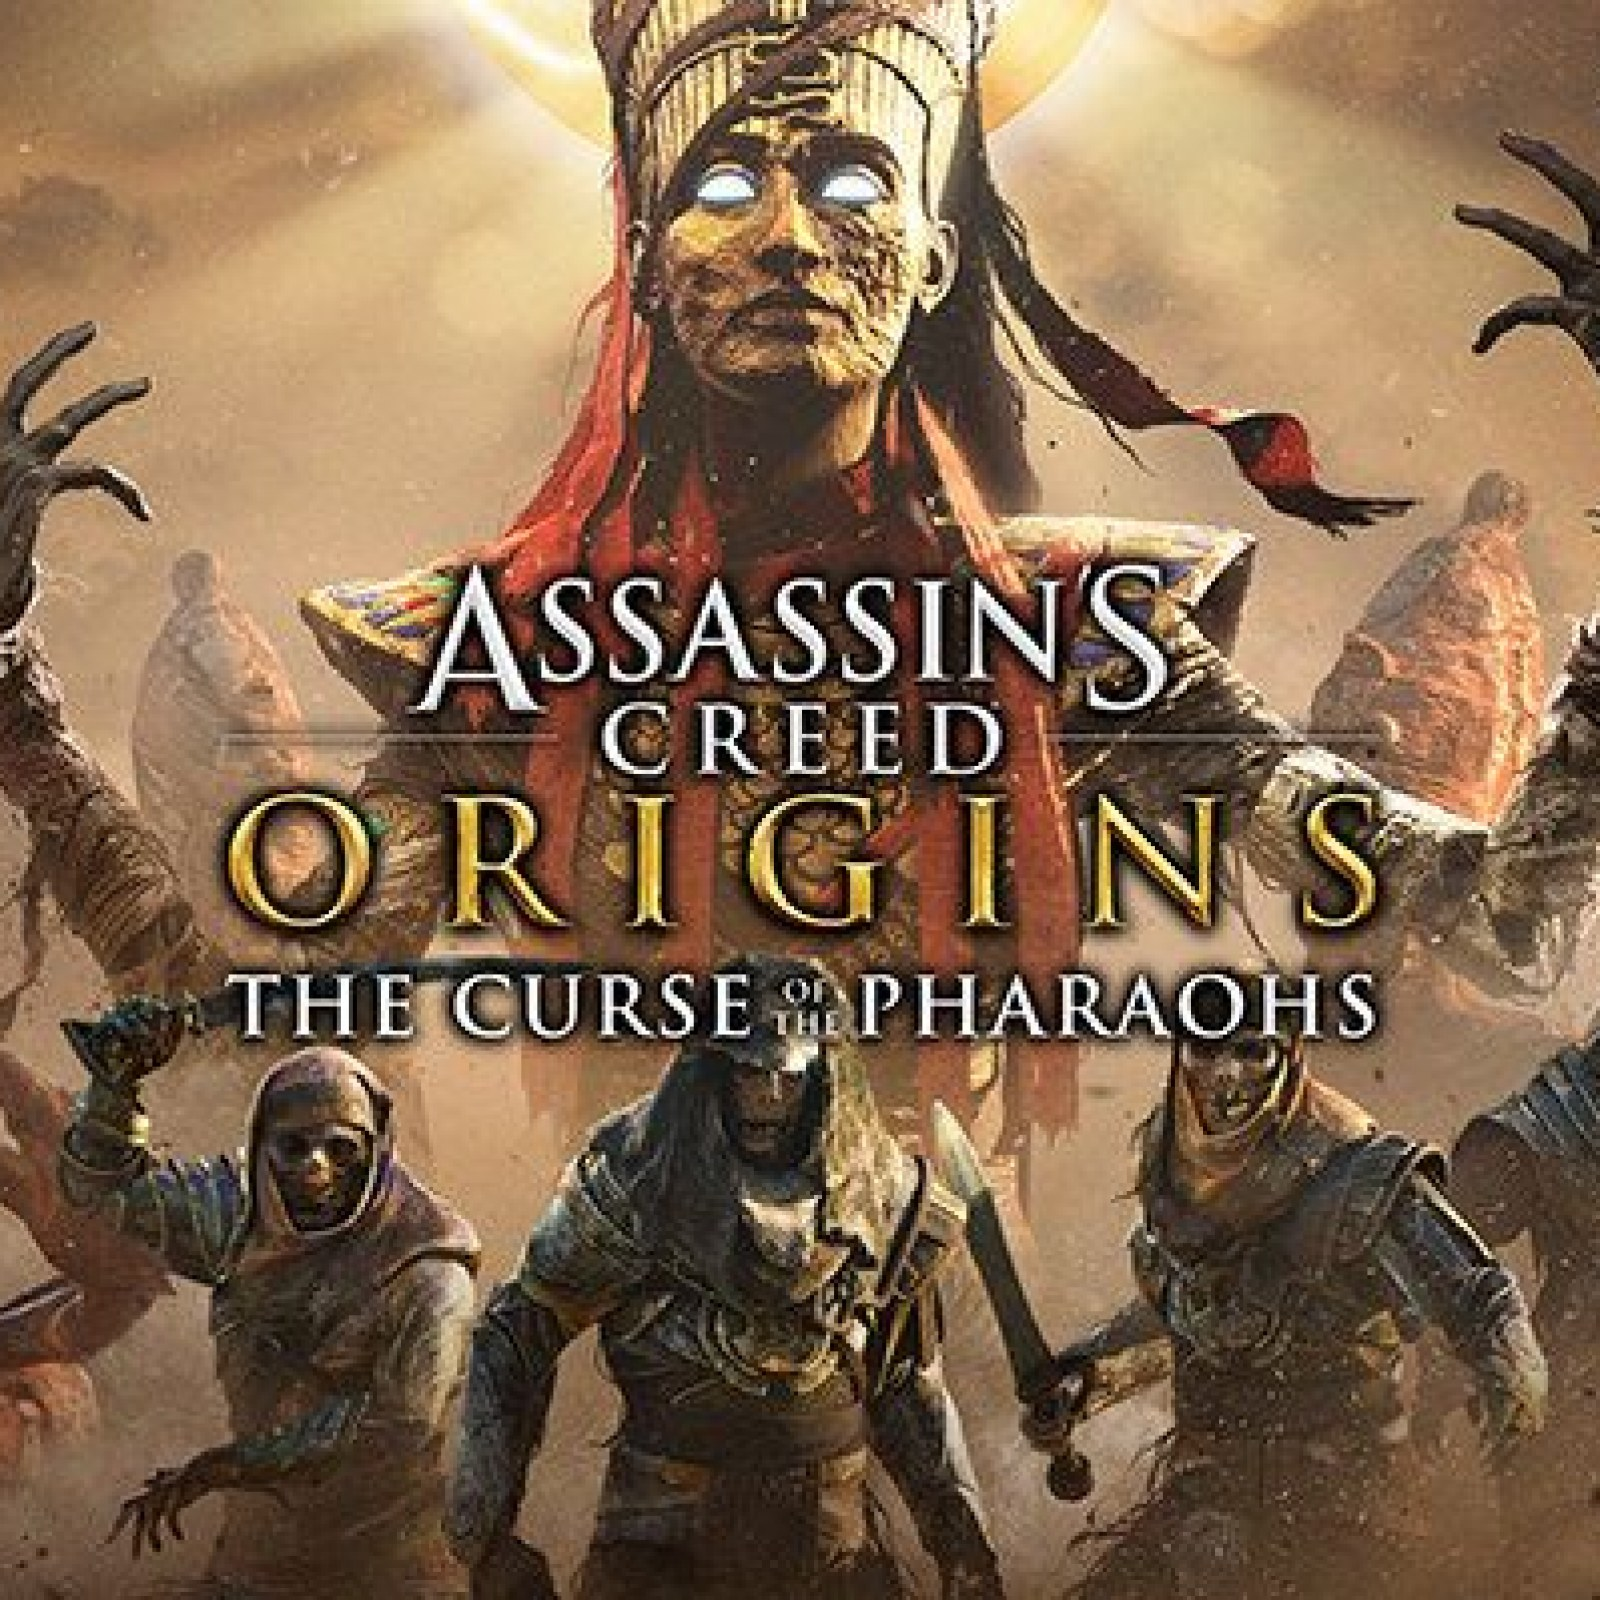 Assassin's Creed Origins' DLC: 'The Curse of the Pharaohs' Download Time